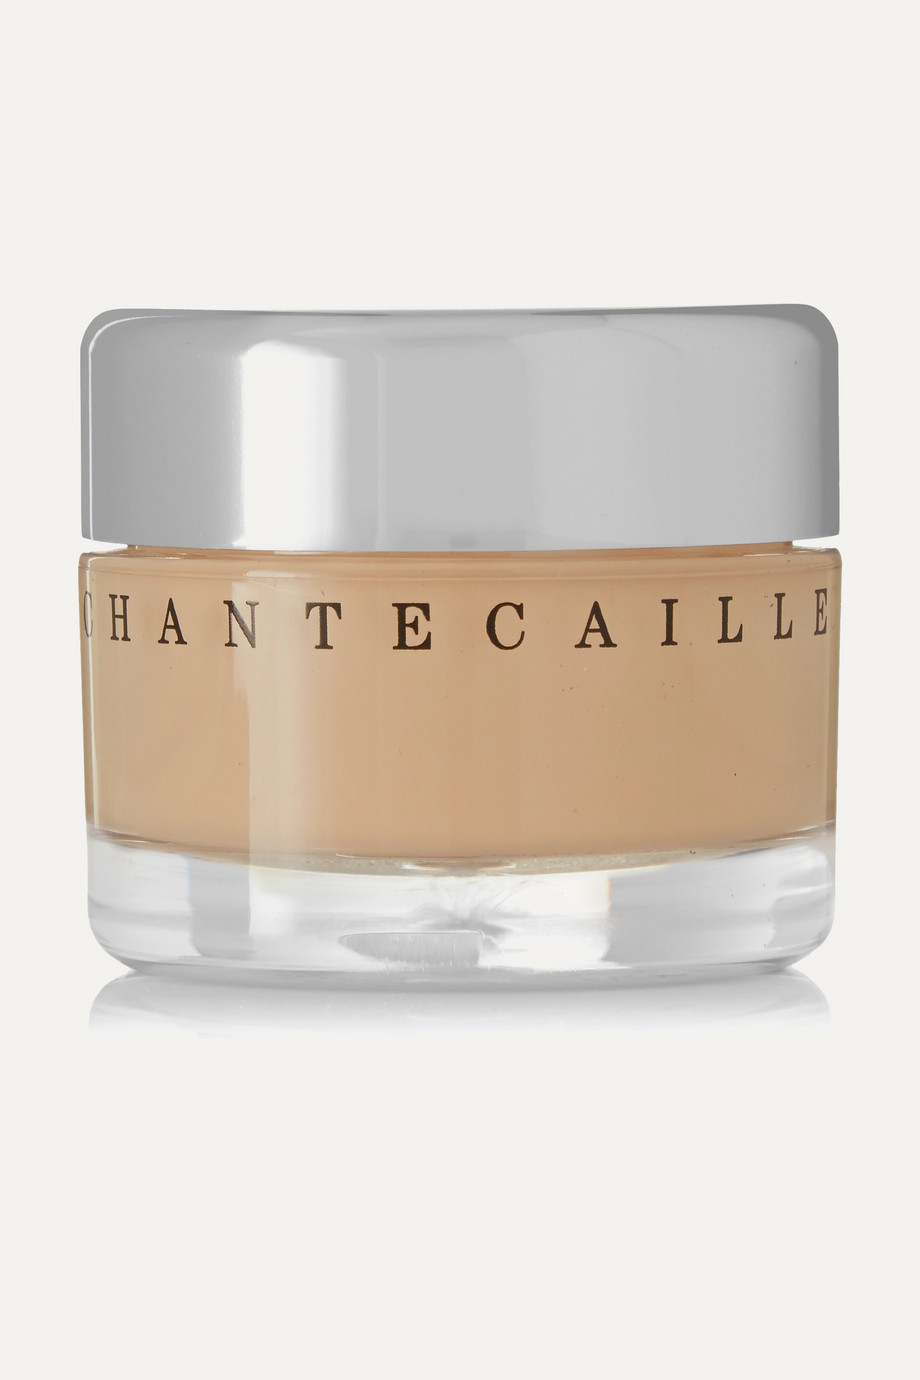 Chantecaille Future Skin Oil Free Gel Foundation – Vanilla, 30 g – Foundation